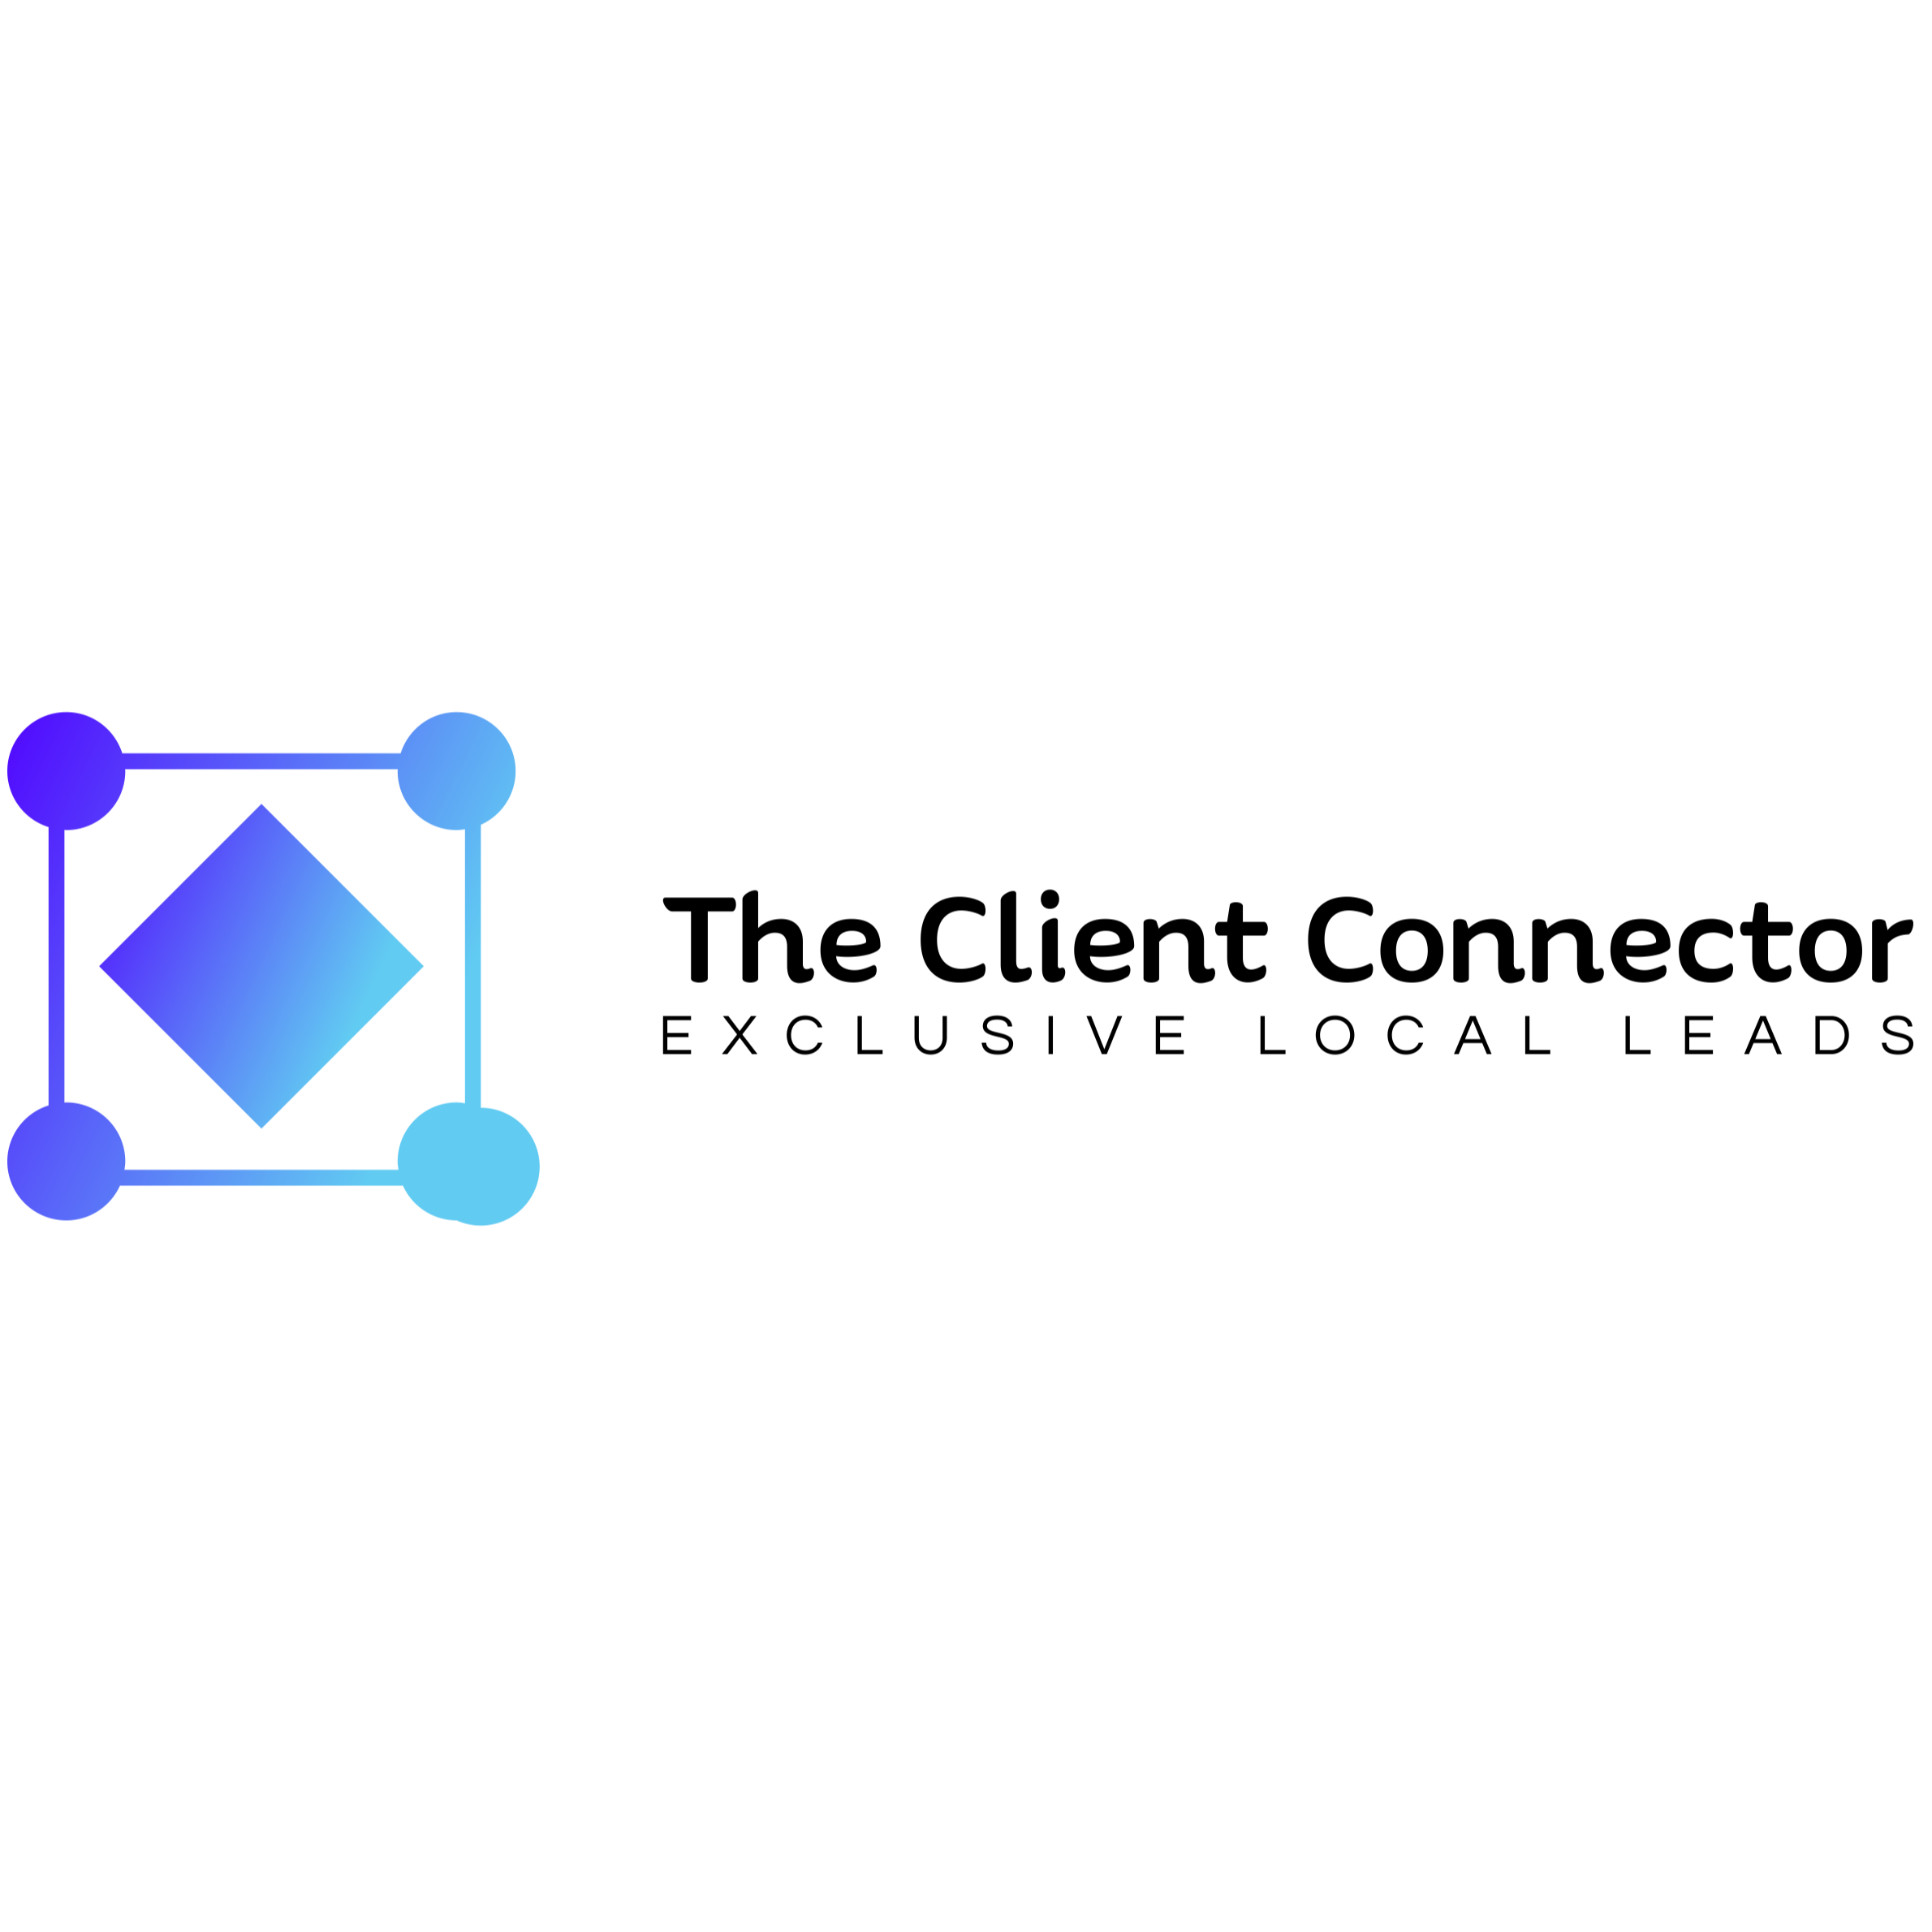 The Client Connector